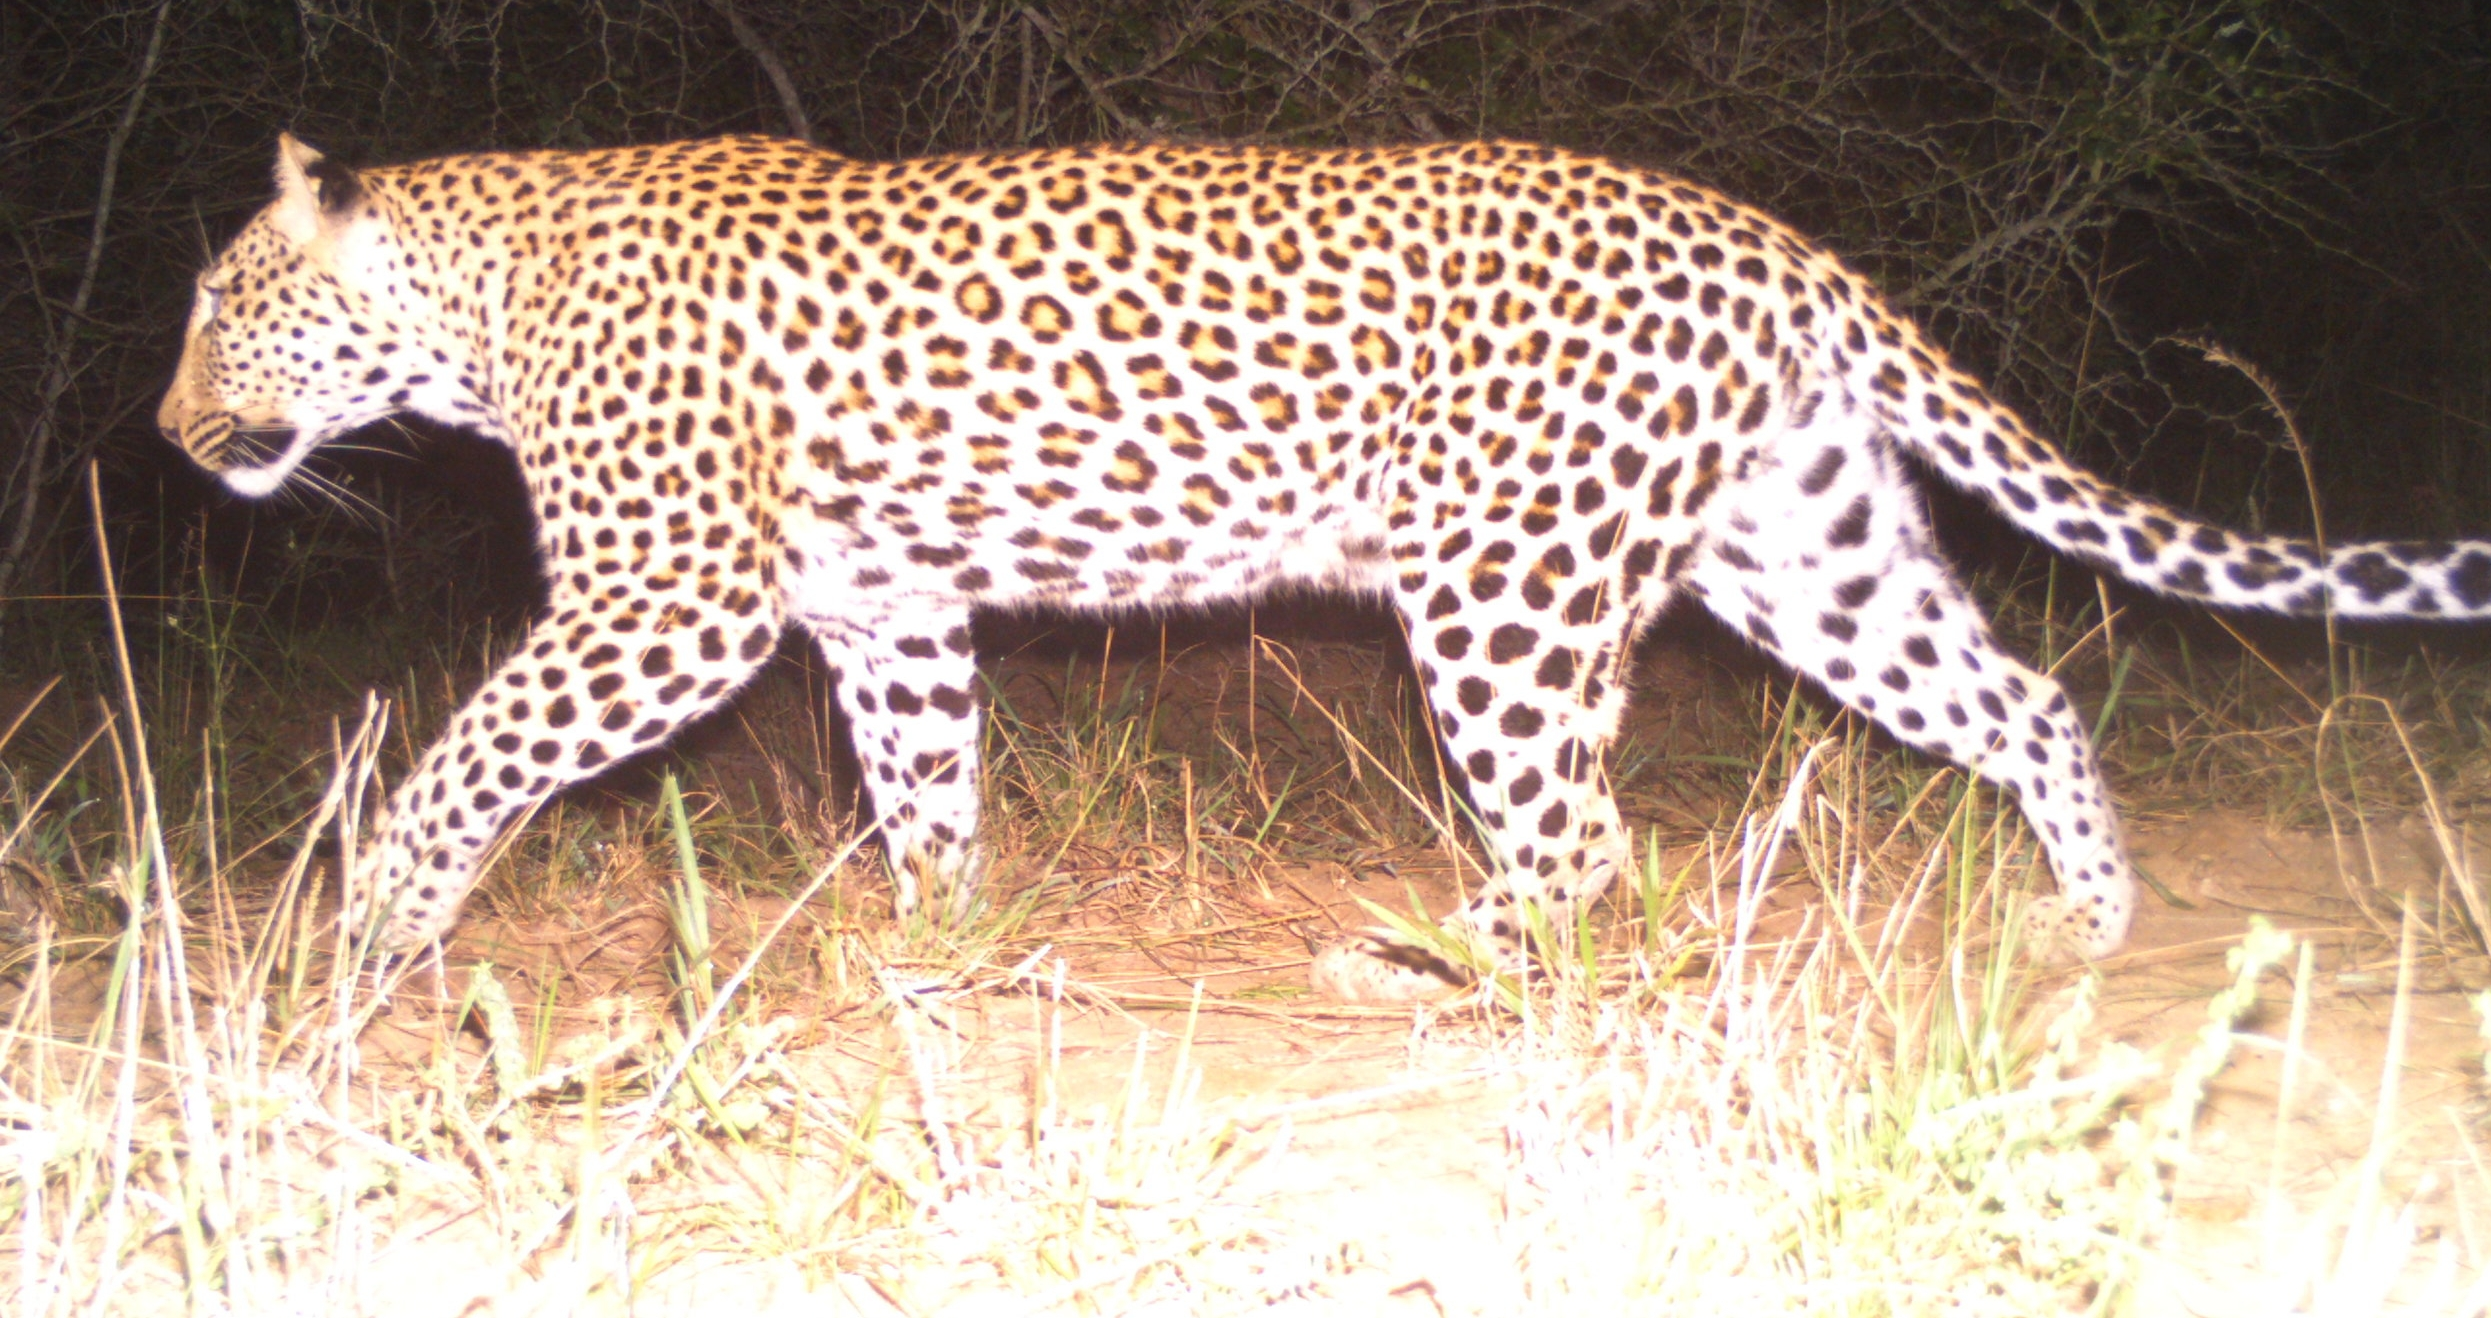 Leopards  (Panthera pardus)  are masters of camouflage, shy, elusive and hard to spot. Not for our camera traps which took a total of 7 captures of leopards across our survey period. This photograph was taken in the cool dark of night, just before midnight - perfect time for hunting.